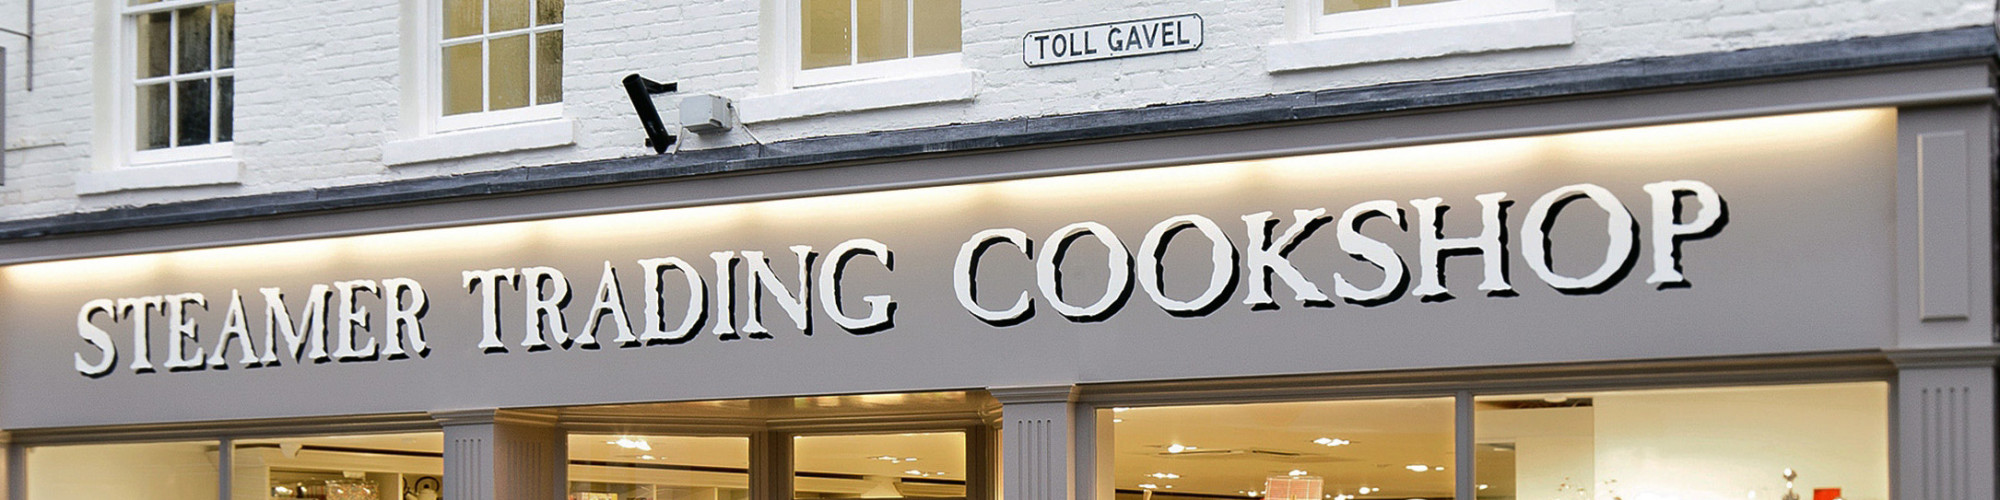 The Steamer Trading Cookshop in Beverley, Yorkshire is earmarked for closure